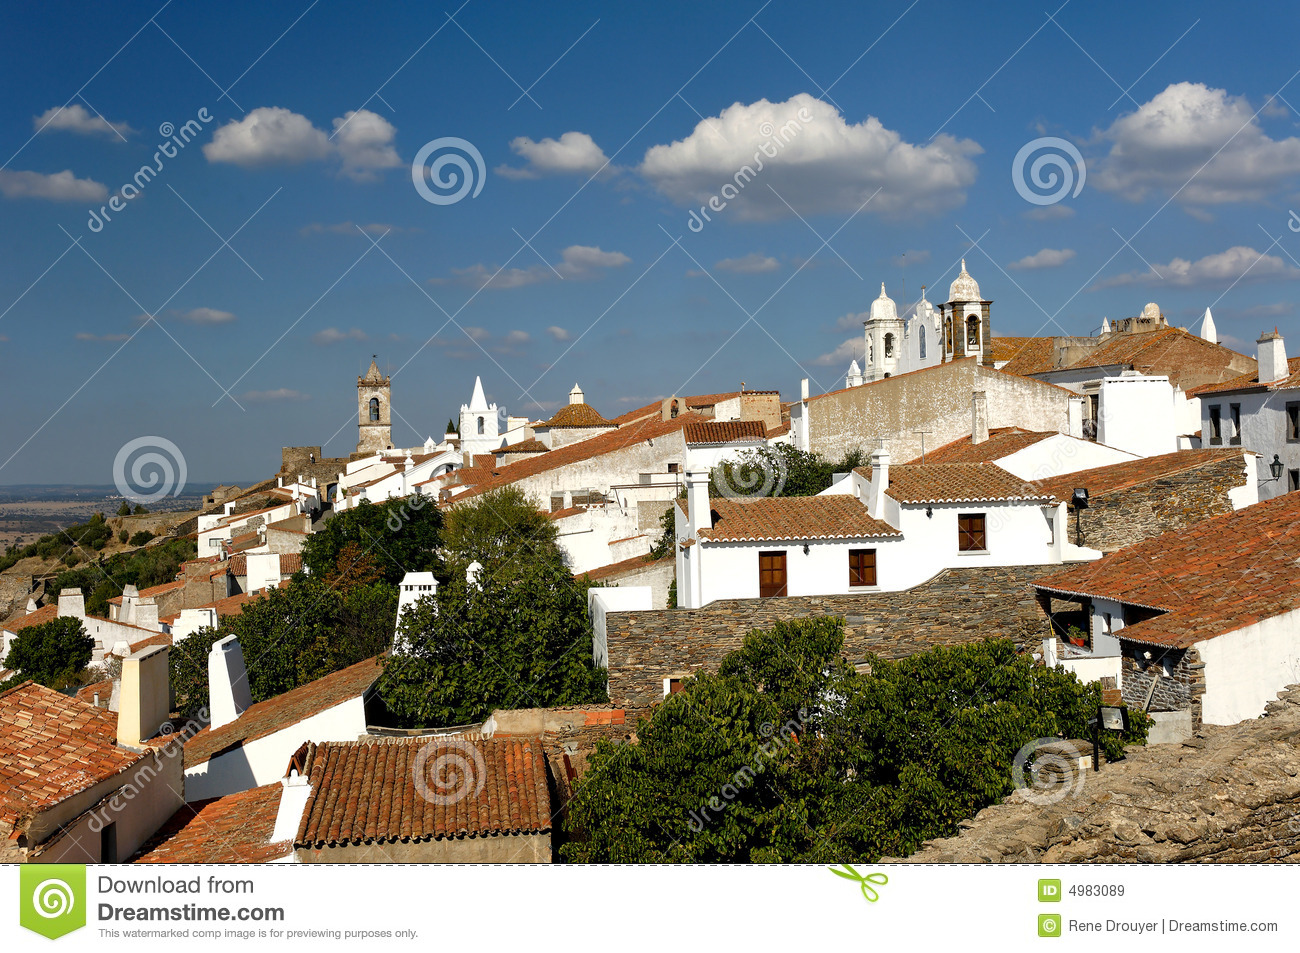 Portugal, Alentejo: village of Monsaraz